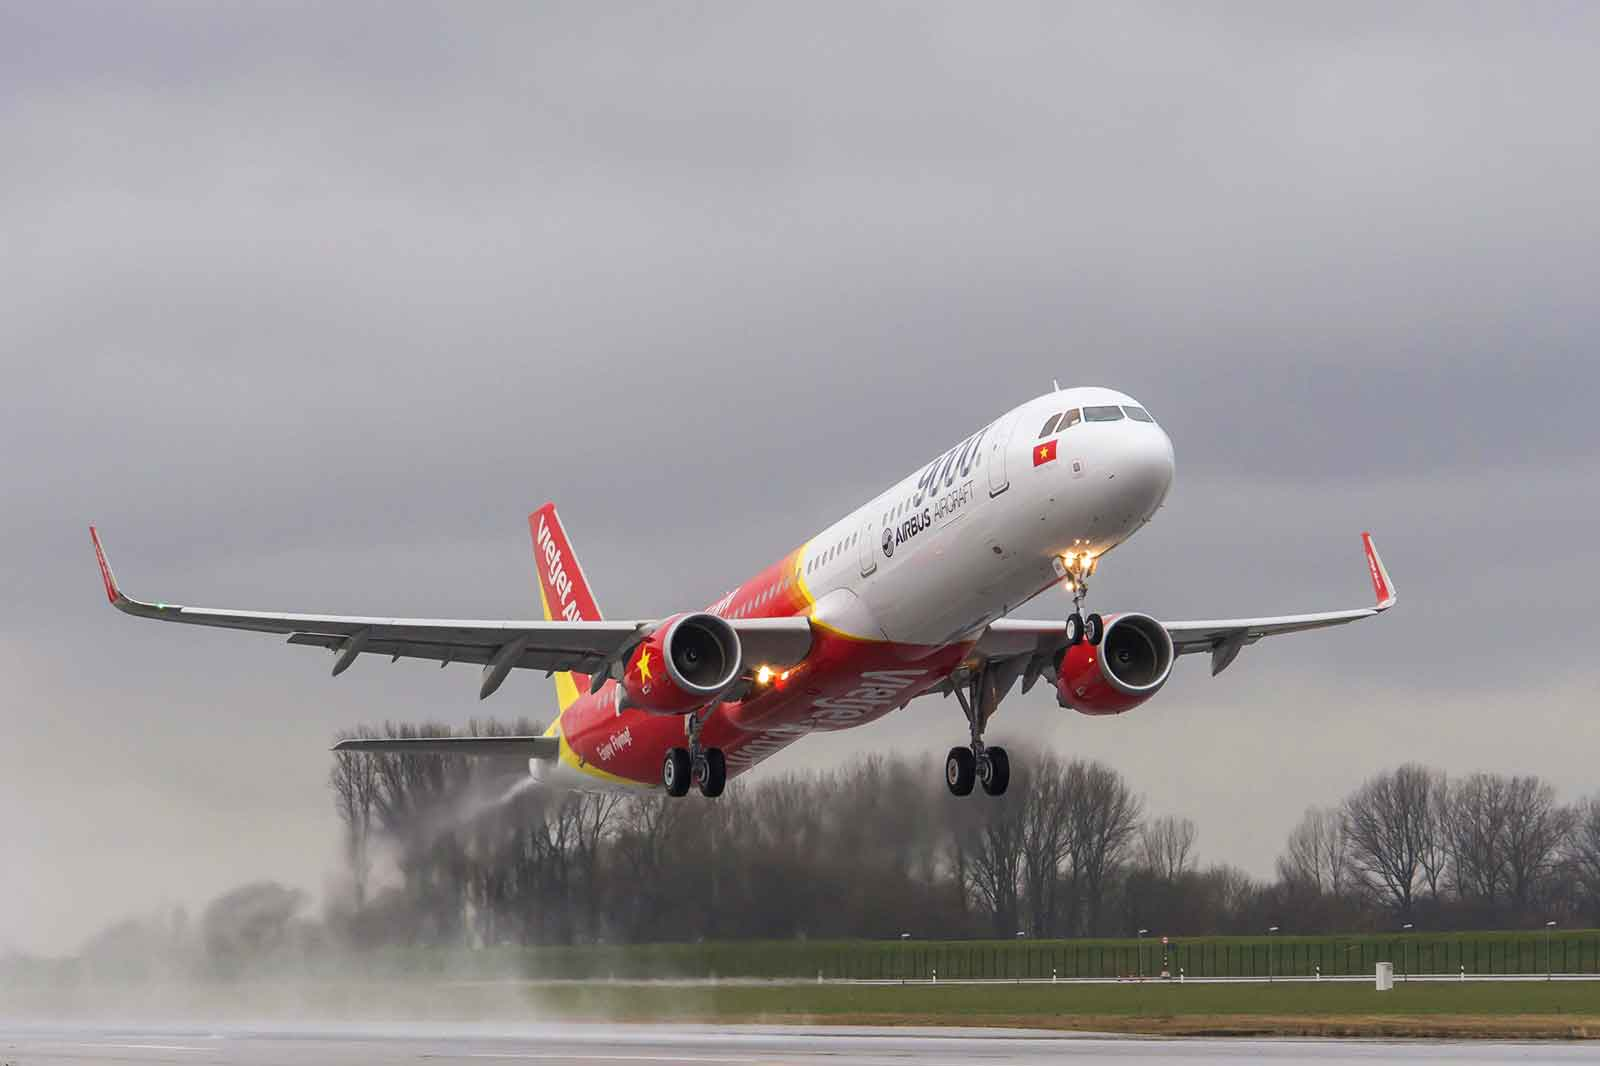 Airbus delivery 9000th aircraft to VietJetAir Airline takes delivery of first A321